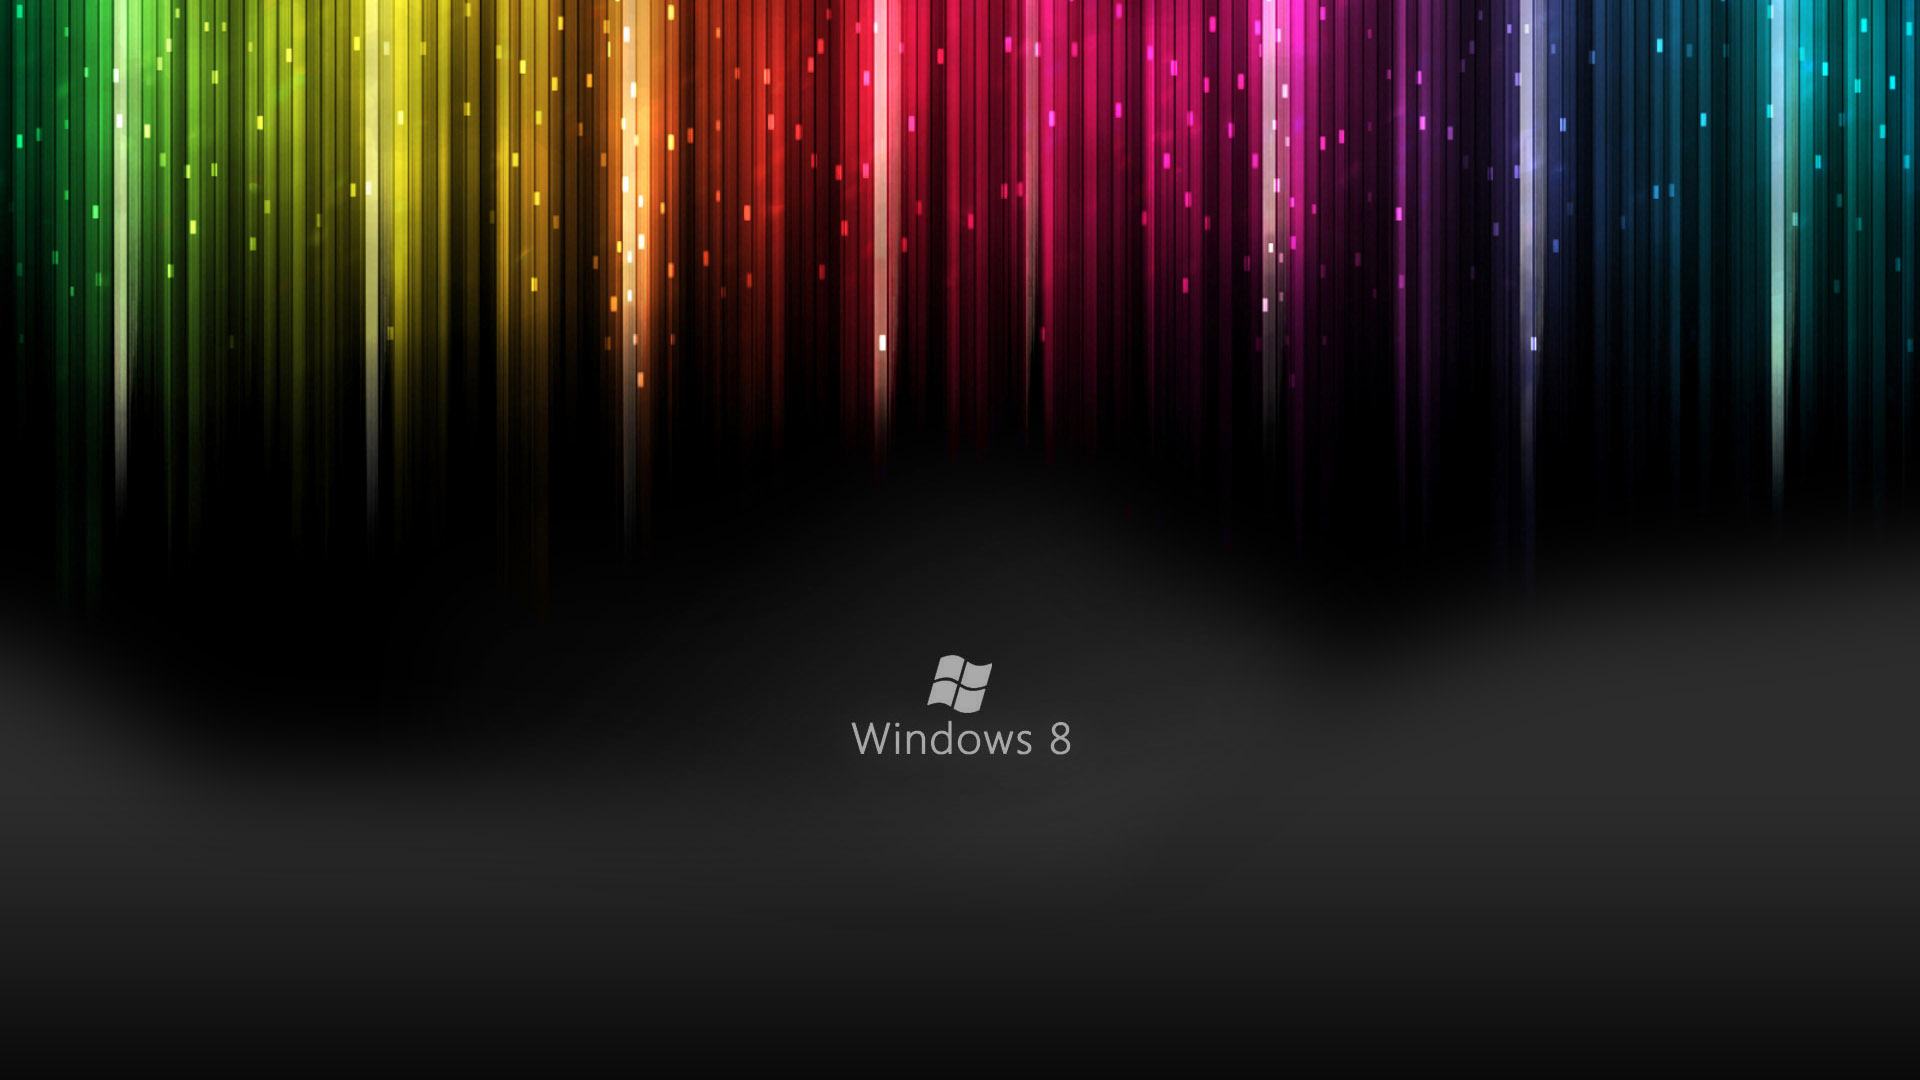 41 Live Wallpapers For Chromebook On Wallpapersafari